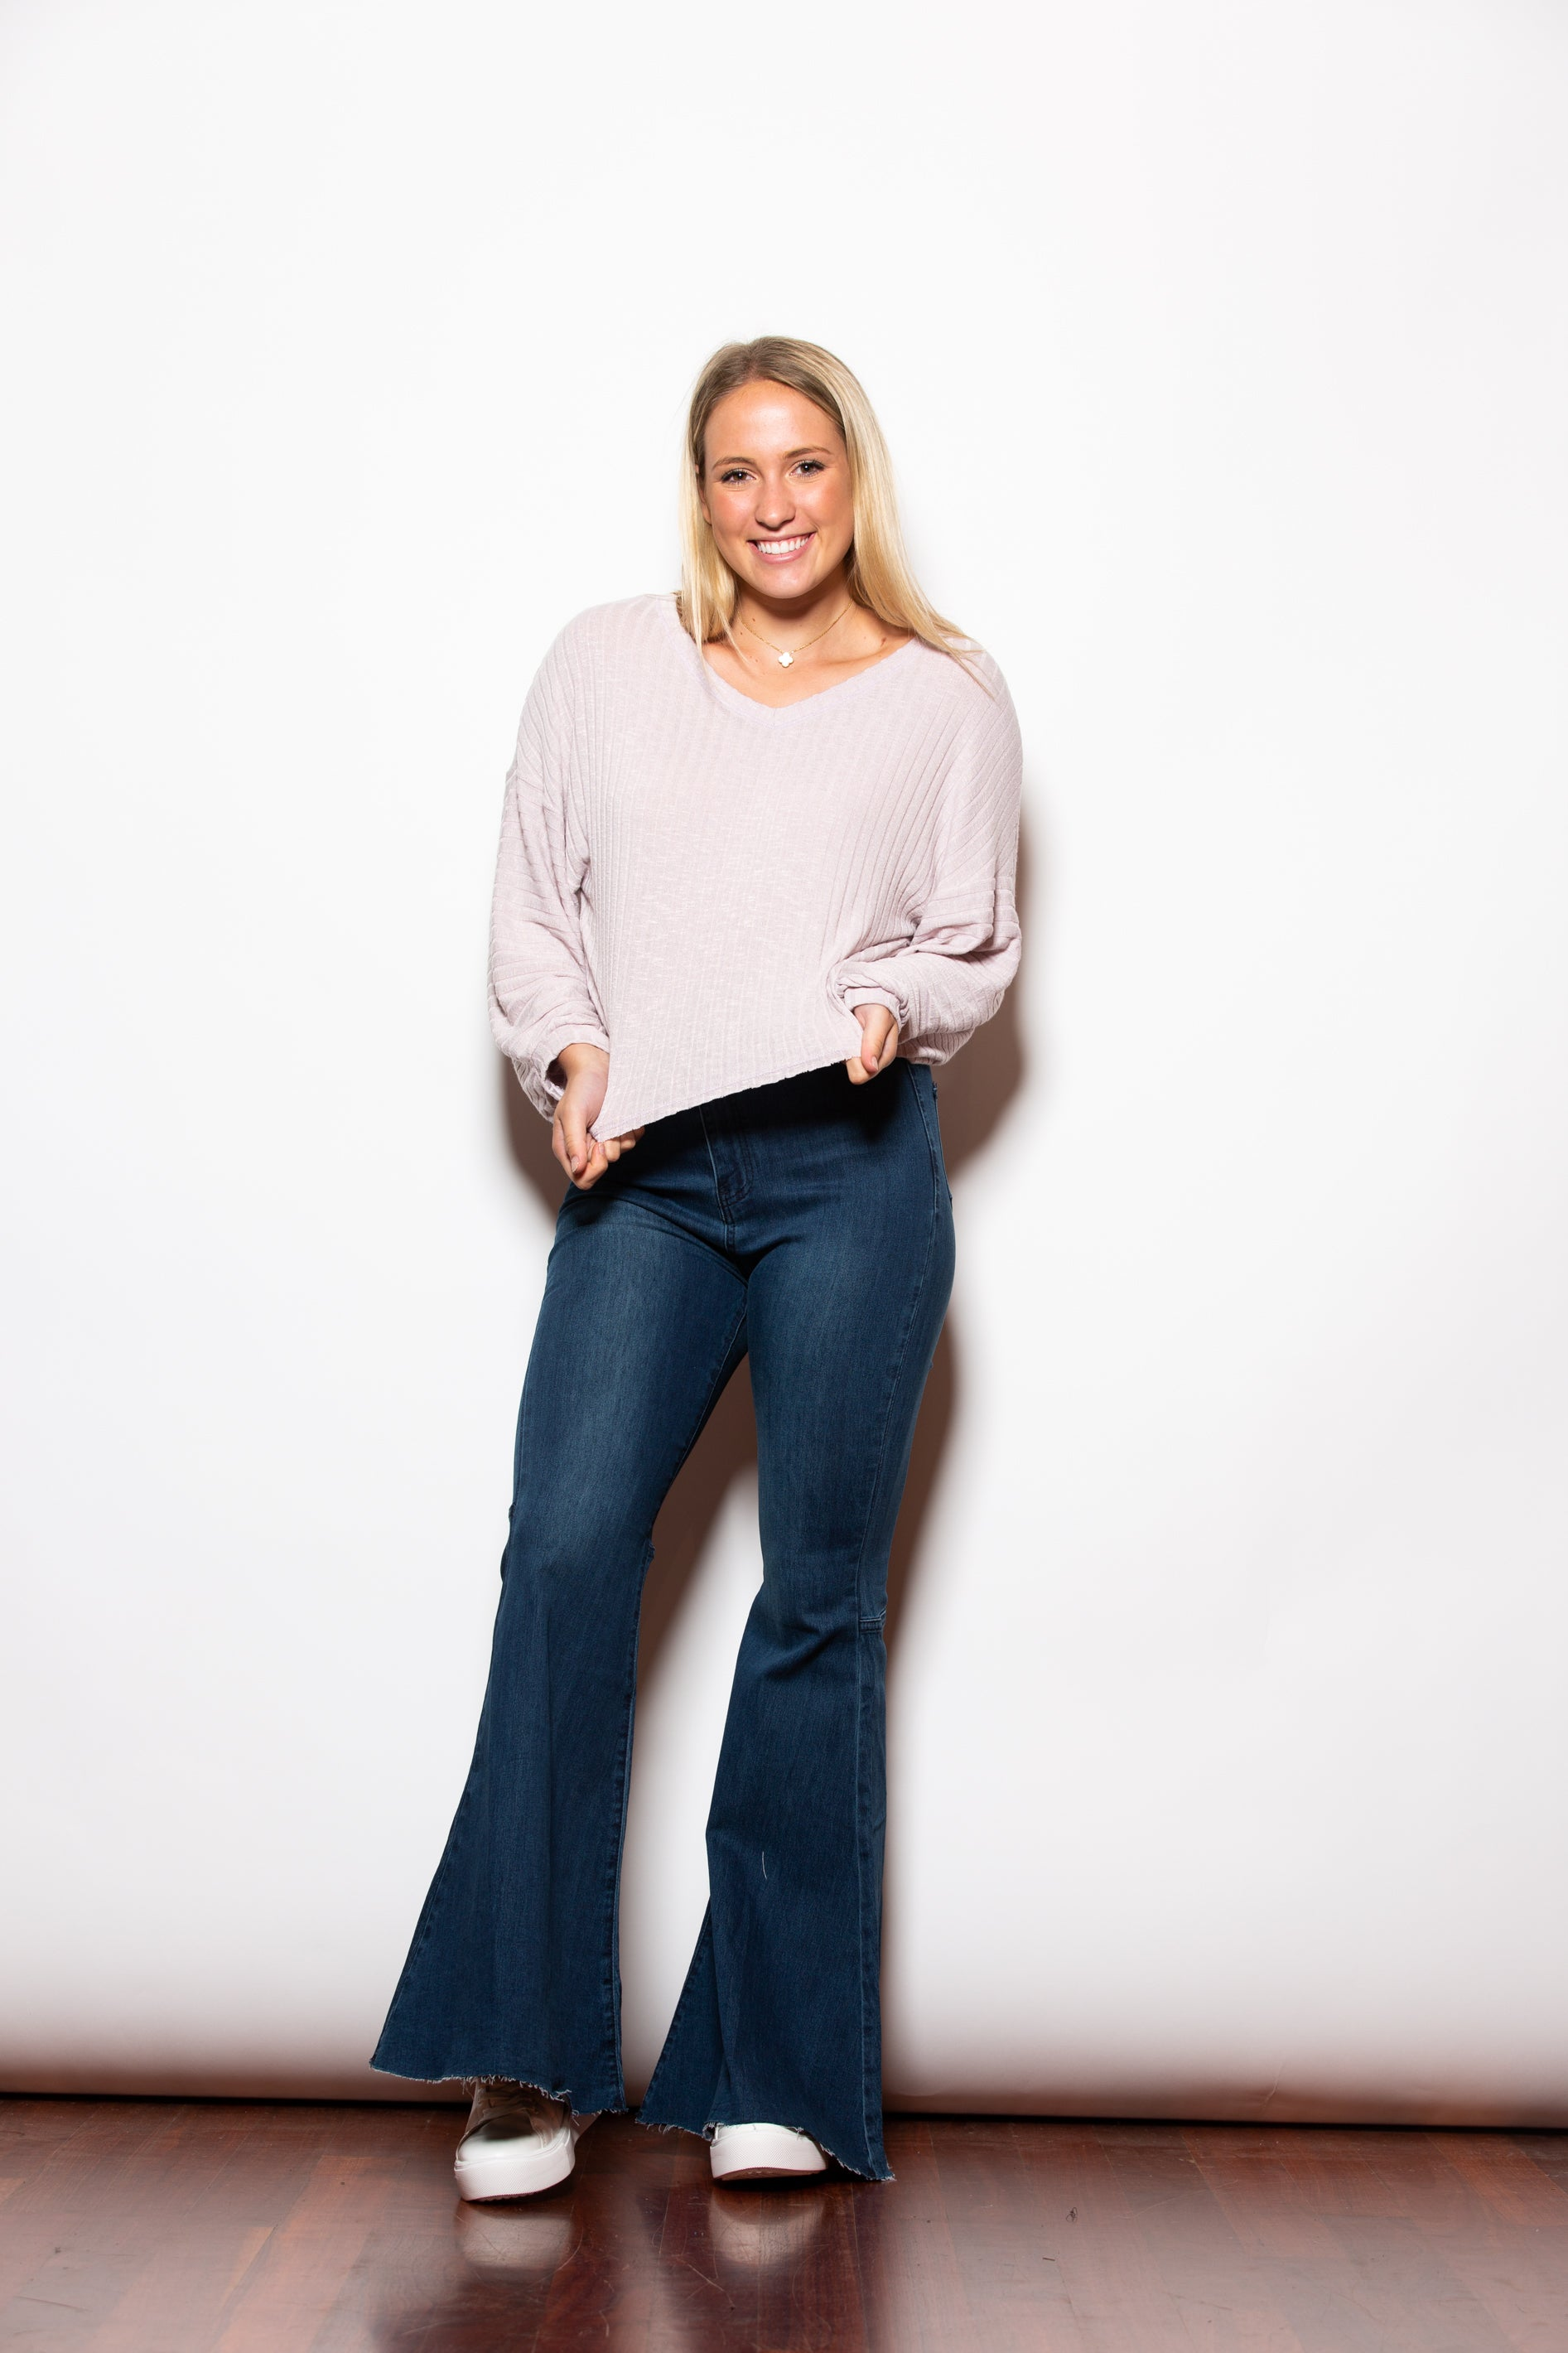 Holding On Long Sleeve Lilac Knit Top - impromptu boutique